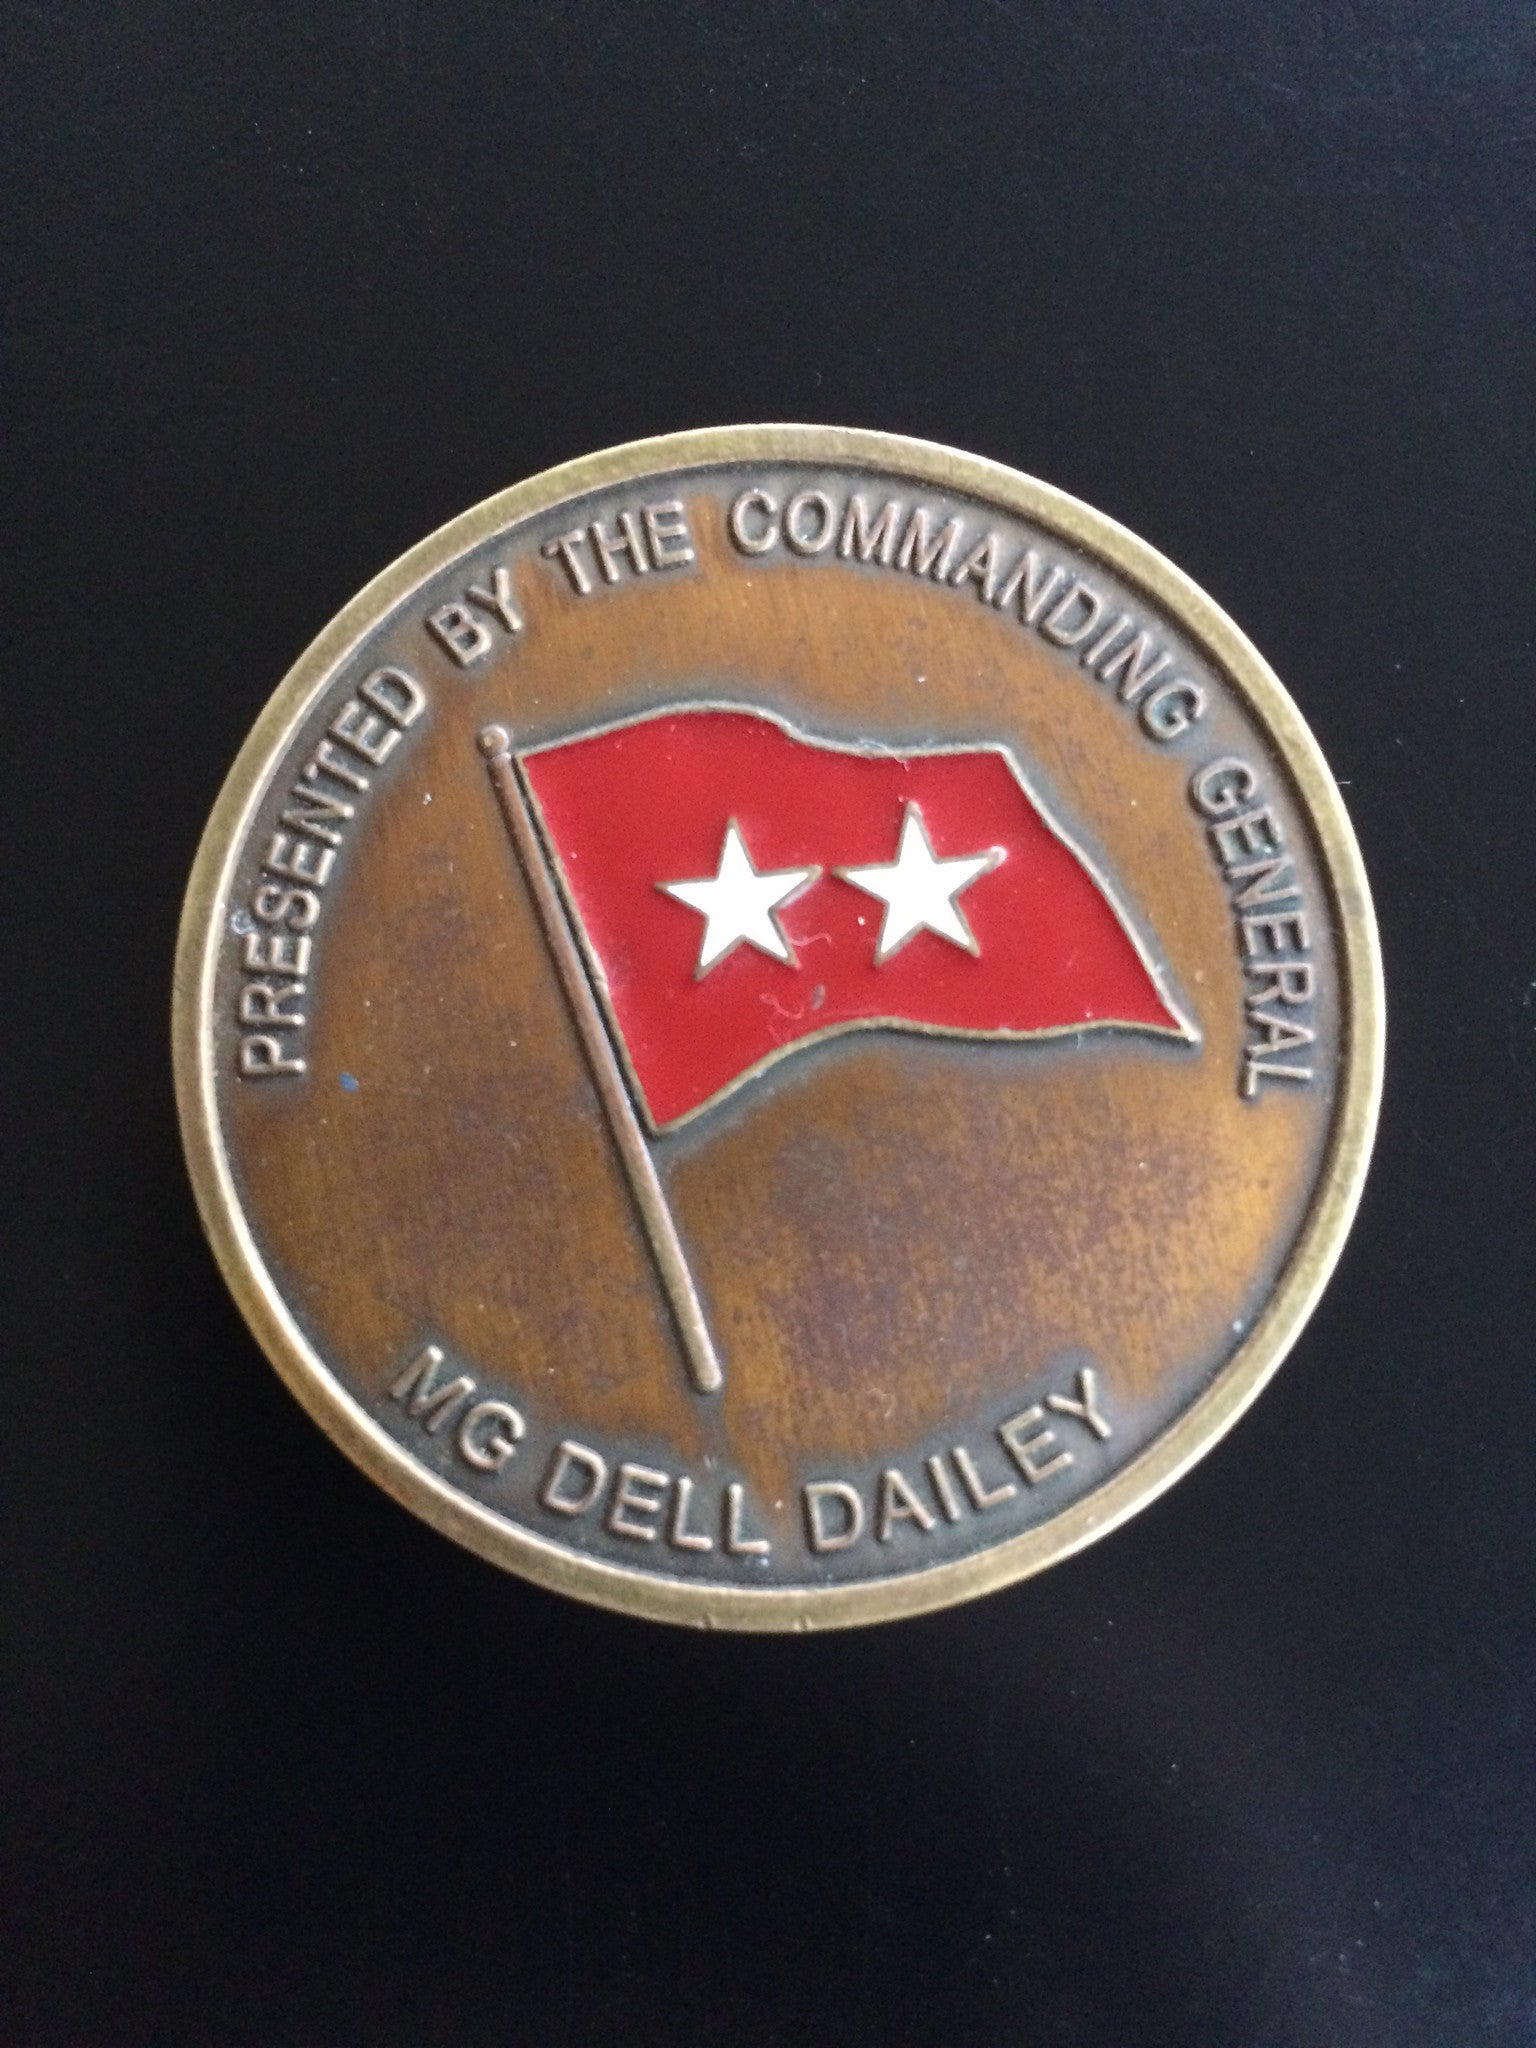 Jsoc commander 9th major general dell dailey jsoc commander 9th major general dell dailey biocorpaavc Images